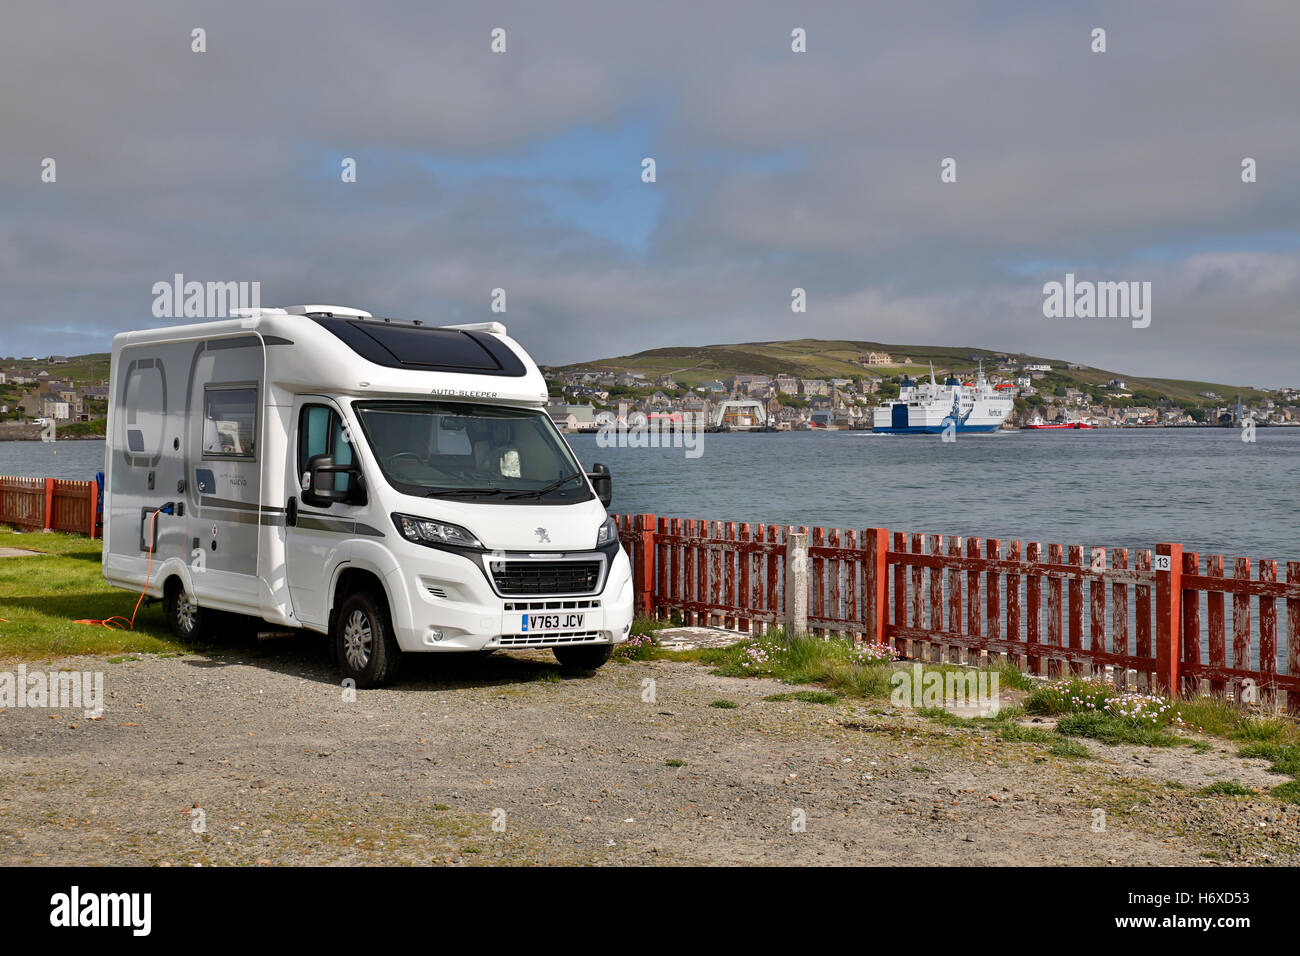 Motorhome; Point of Ness Campsite; Stromness; Orkney; Scotland; UK - Stock Image